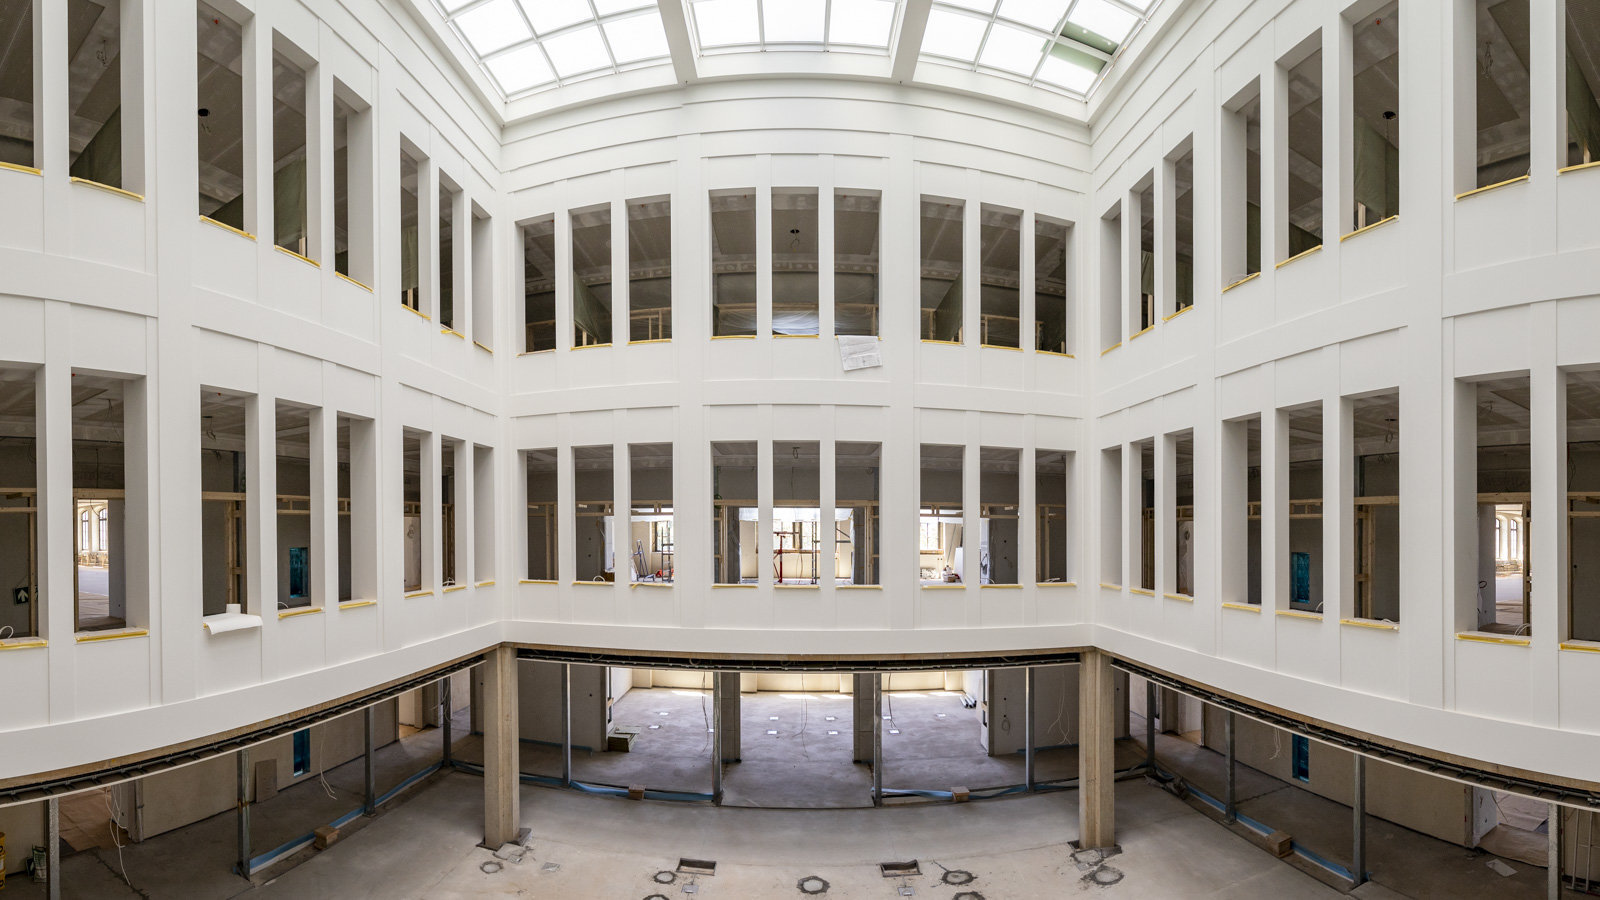 Look inside the main reading hall of the new university library.